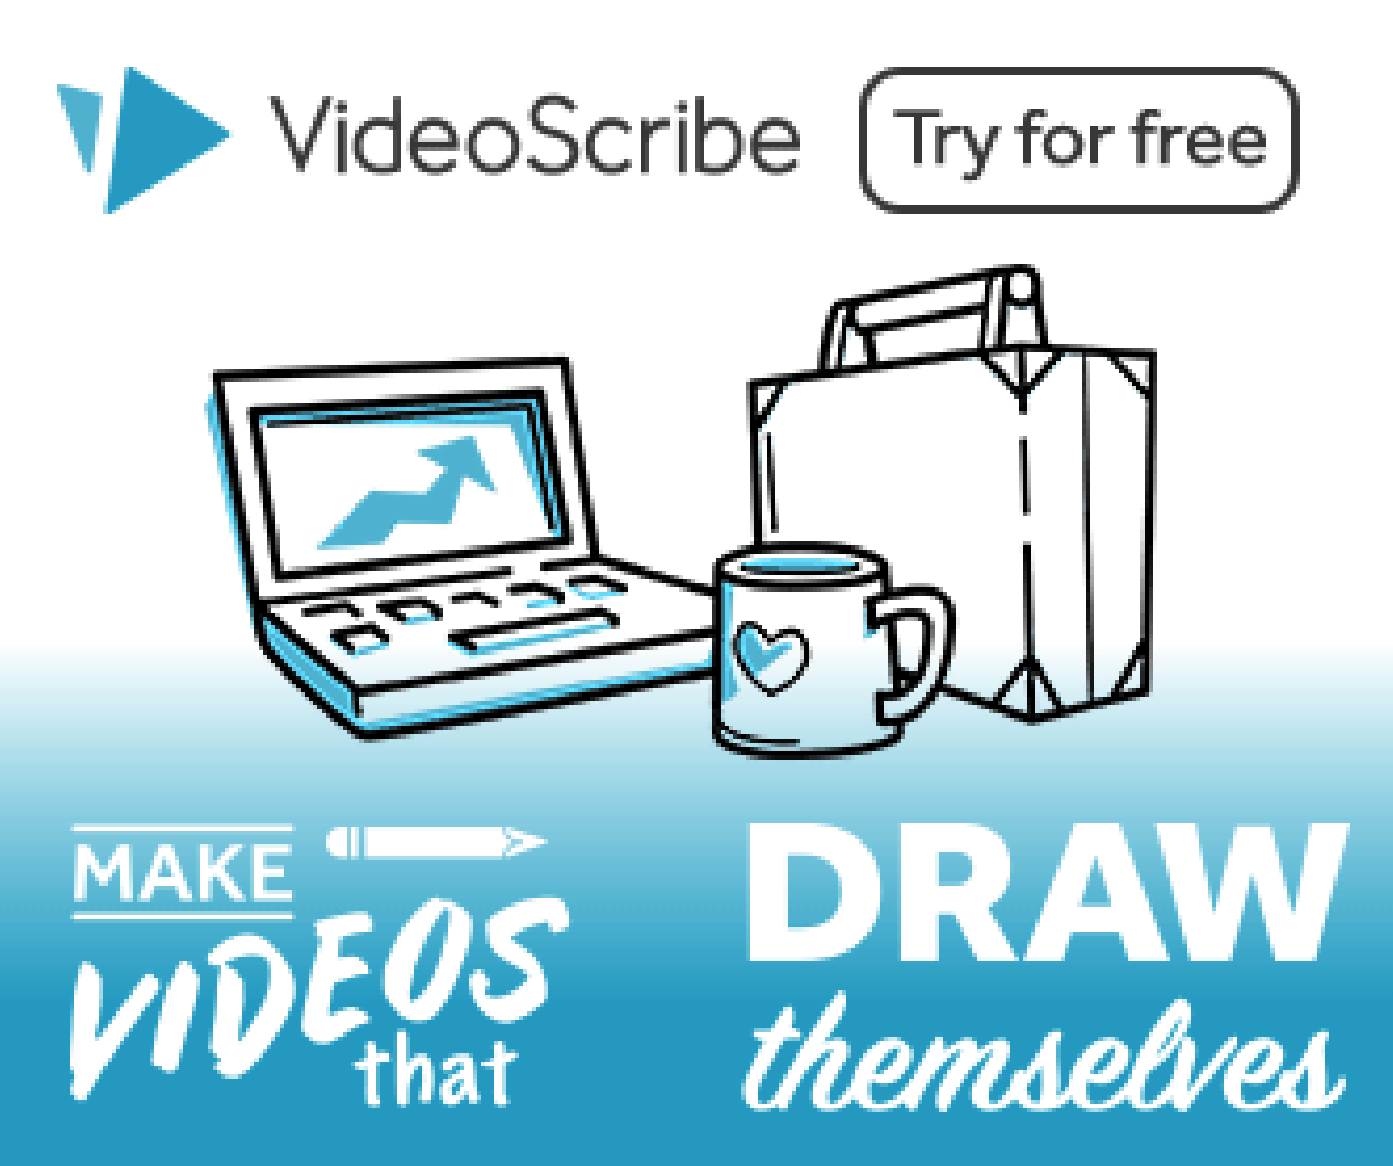 VideoScribe – Try for free